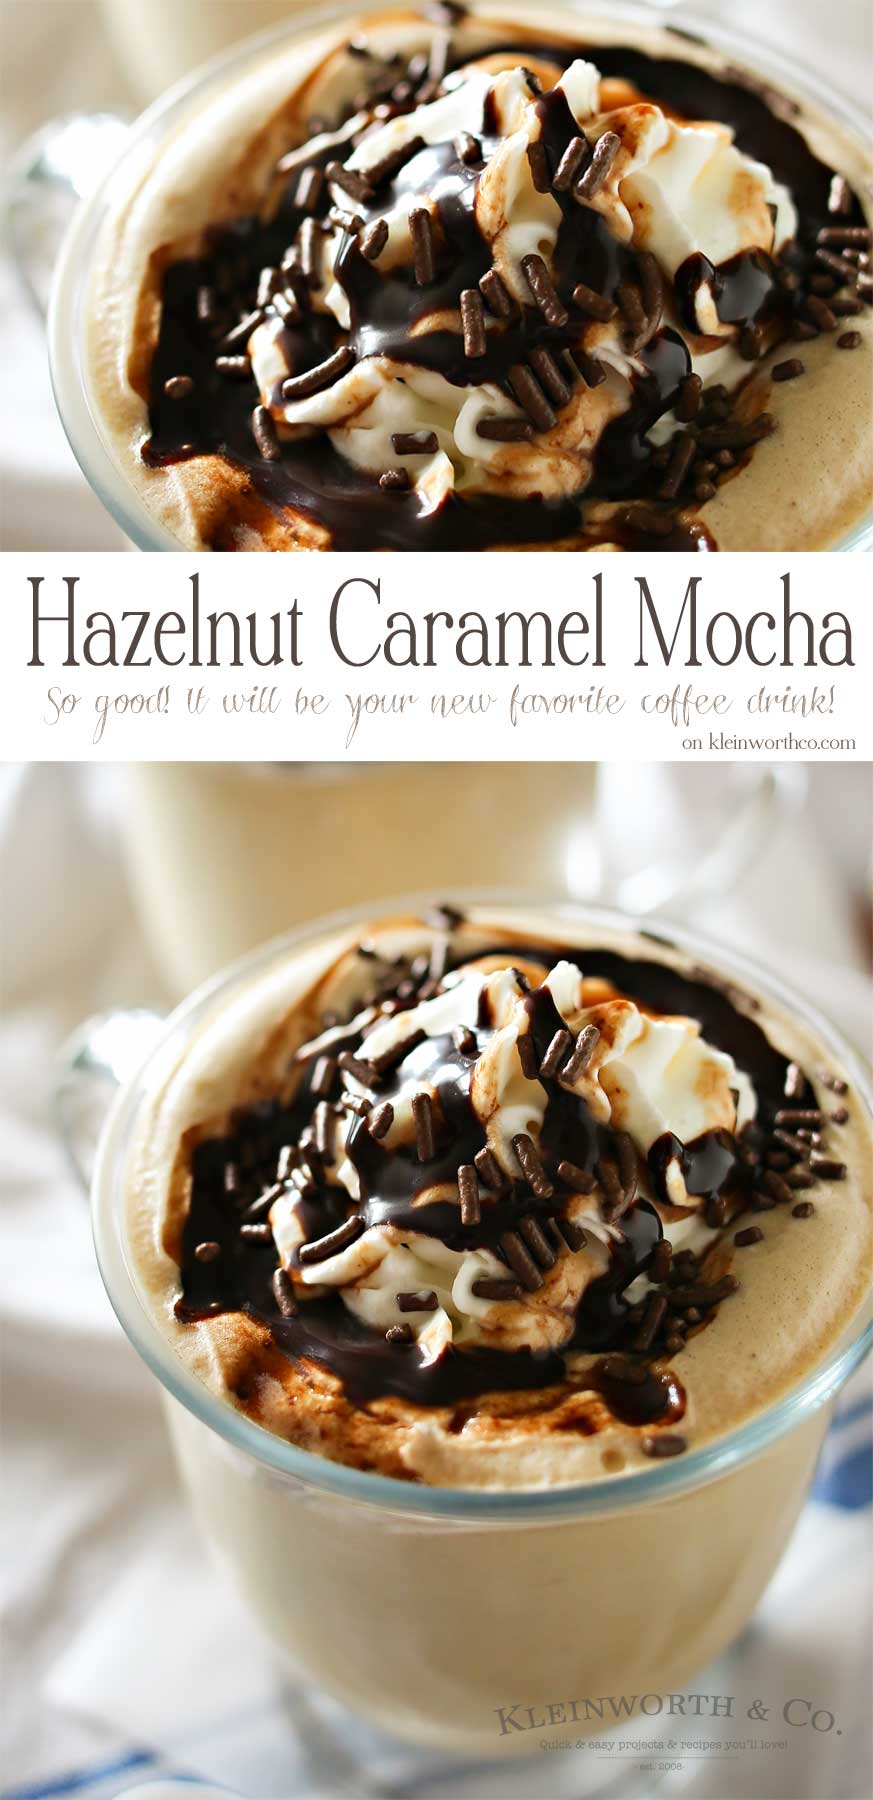 If you love to re-create your favorite coffee house drinks then you are going to LOVE this recipe. It's your favorite coffee loaded with caramel, hazelnut & chocolate flavors- YUM. Your morning coffee just got better with this BRILLIANT Hazelnut Caramel Mocha. Definitely my favorite way to start the day & it's so easy!